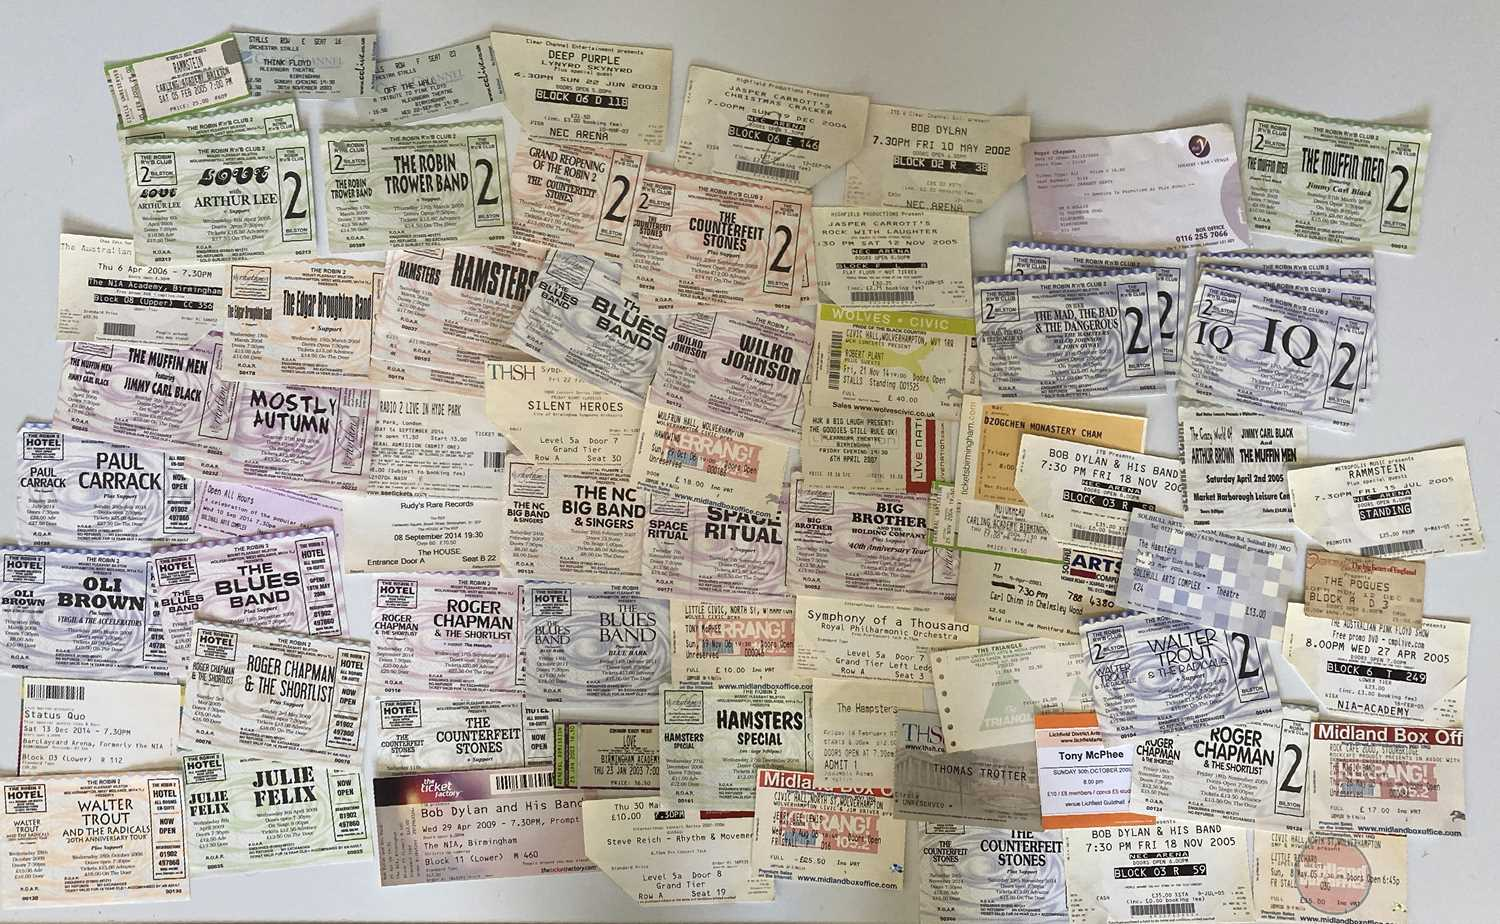 00s CONCERT TICKET ARCHIVE - SOME SIGNED. - Image 8 of 8